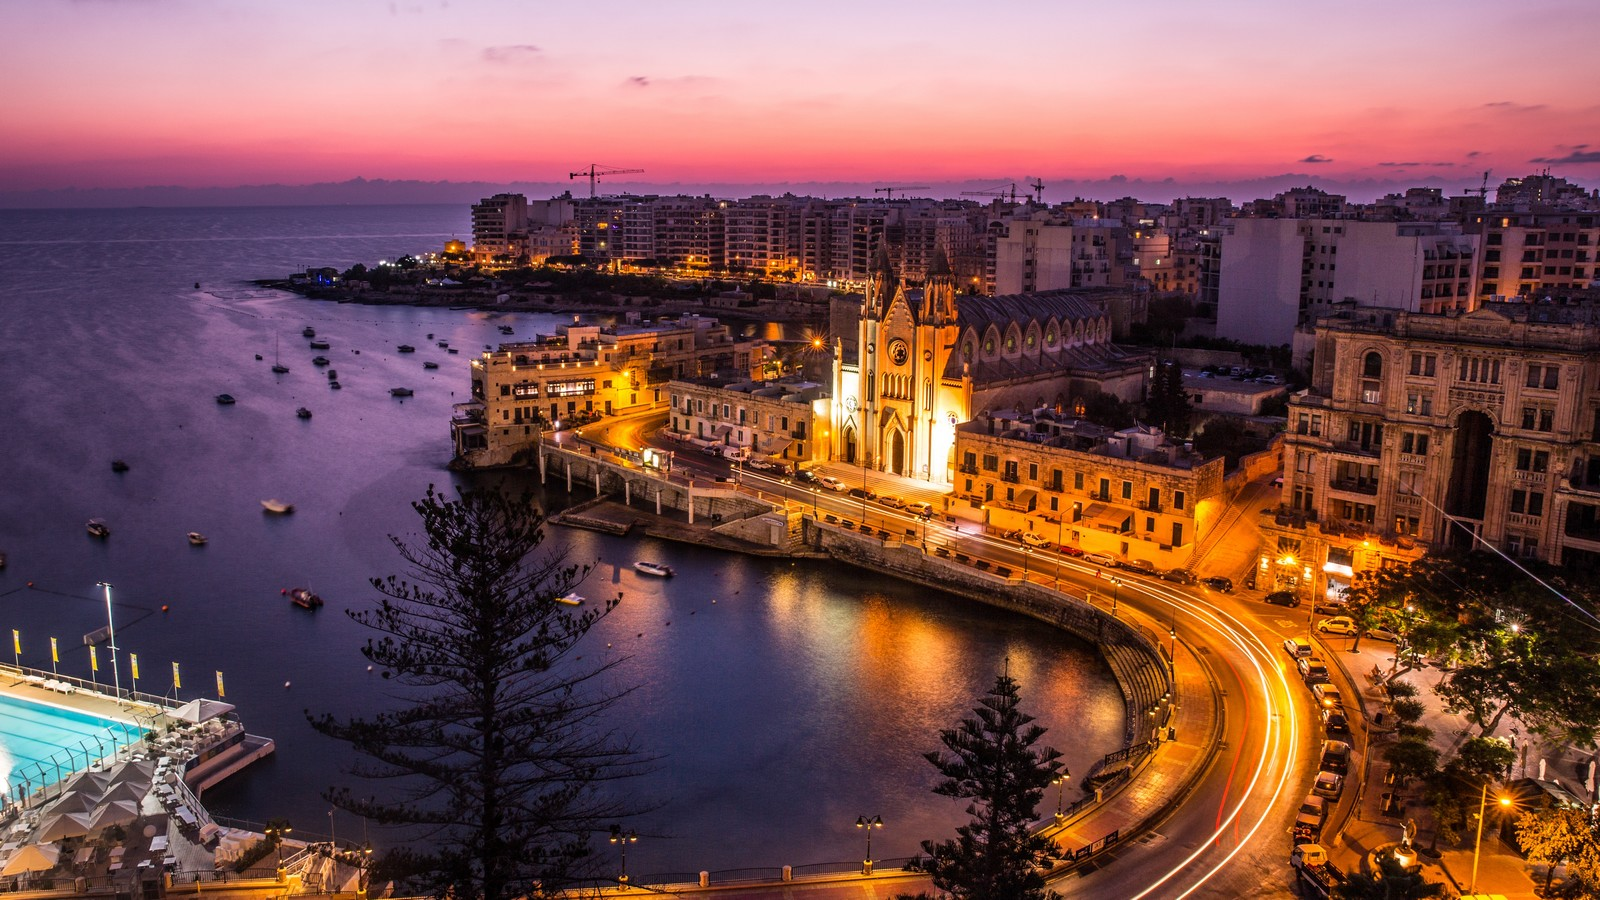 Sunset at Le Meridien Malta